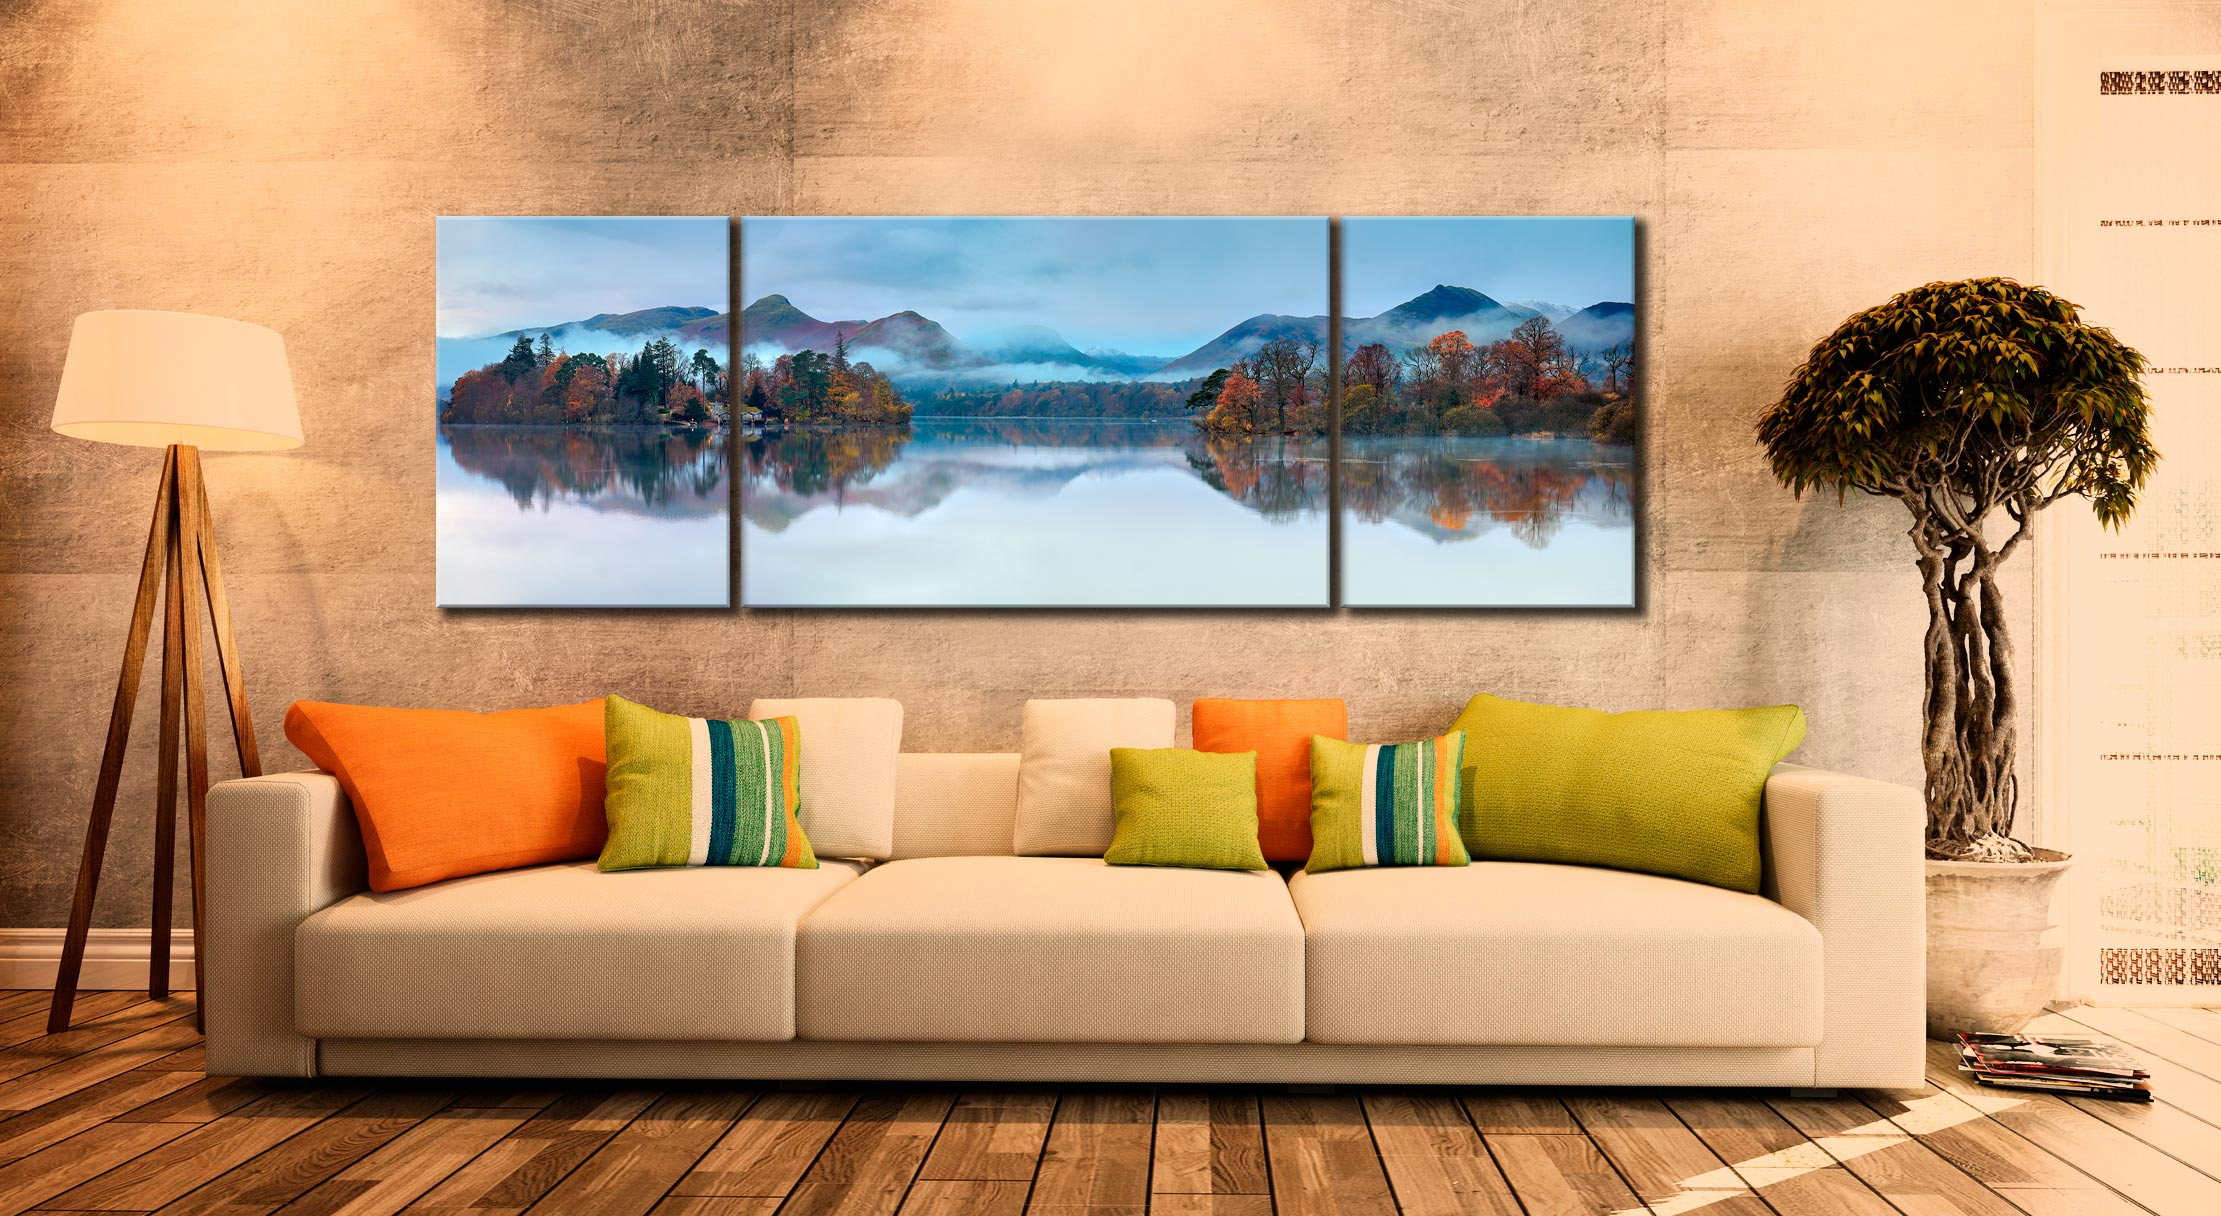 Derwent Isle Dawn Mists - 3 Panel Wide Mid Canvas on Wall